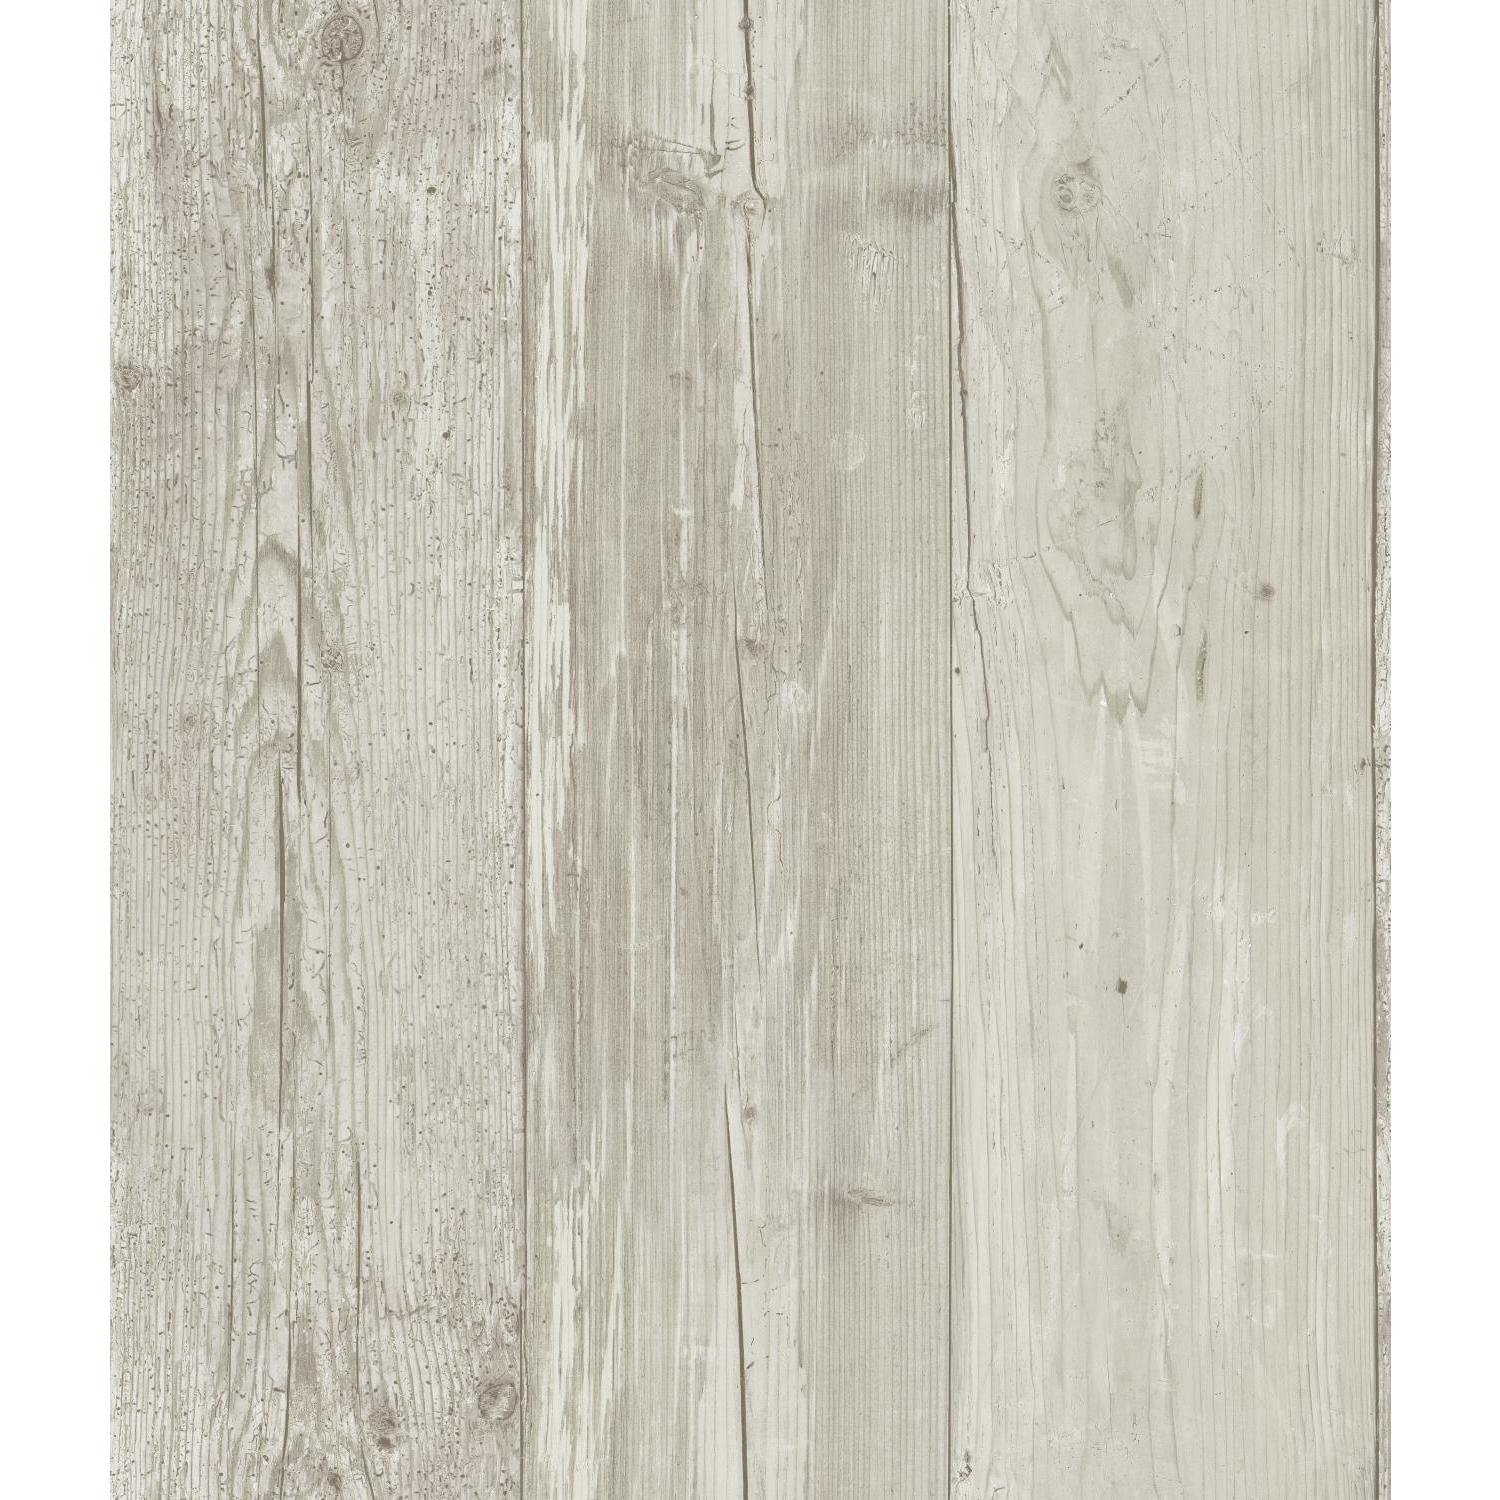 York Wallcoverings ZB3347 Wide Wooden Planks Wallpaper, Gray/Black/Off White